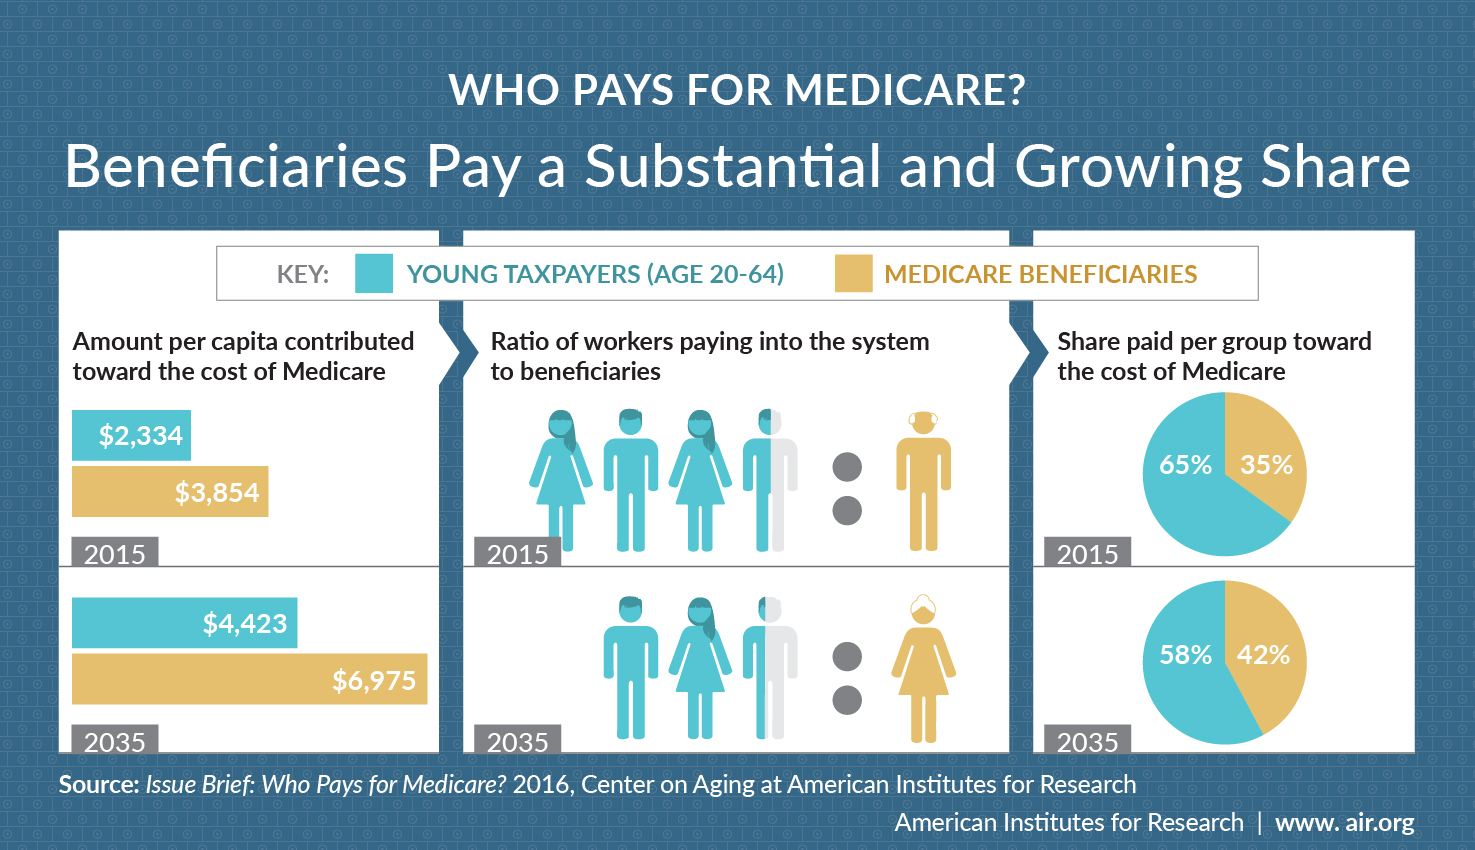 Infographic: Who Pays for Medicare? Chart compares the amount per capita and share paid per group toward the cost of Medicare between young taxpayers and beneficiaries.